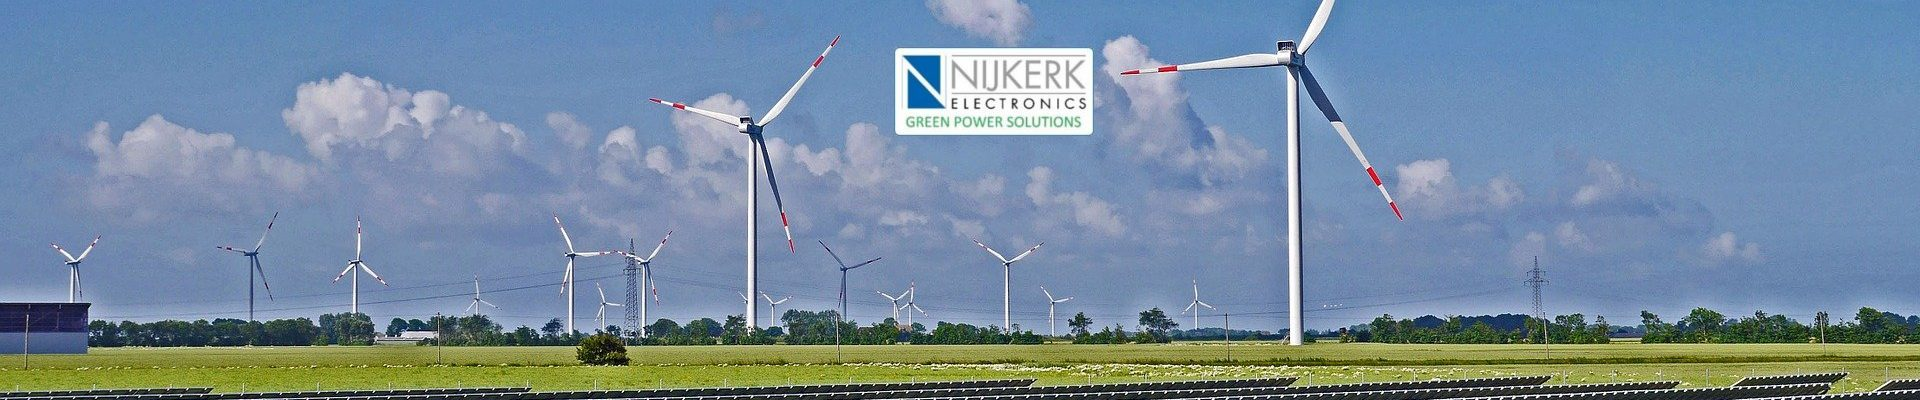 Green power passive component solutions